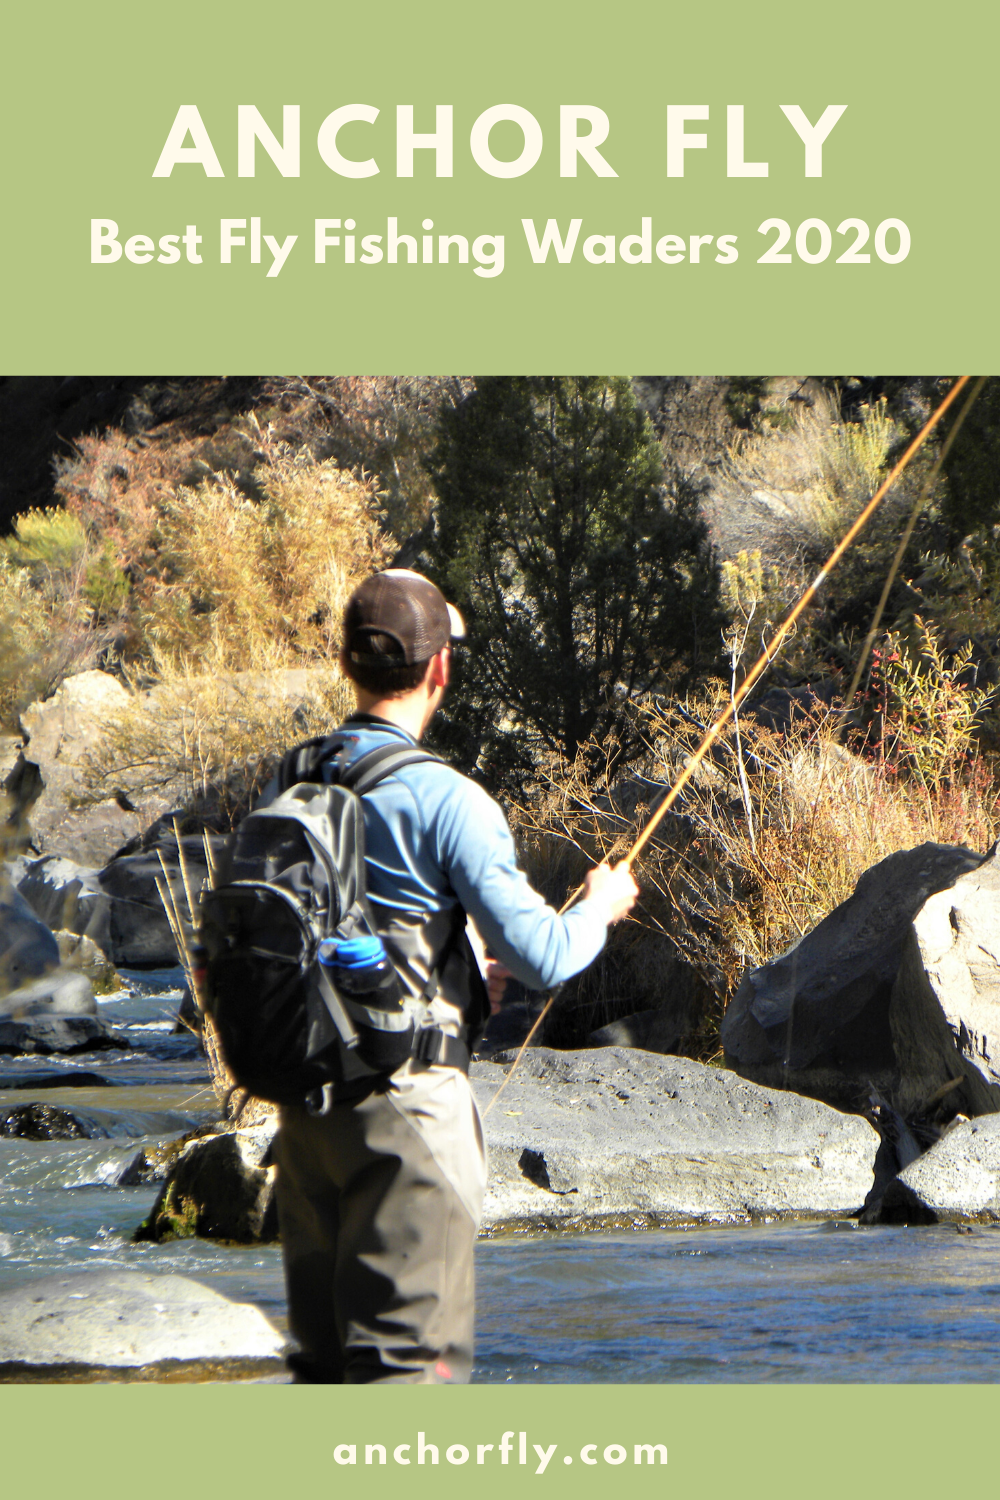 Best Fly Fishing Waders Reviewed 2020 In 2020 Fly Fishing Fishing Waders Waders